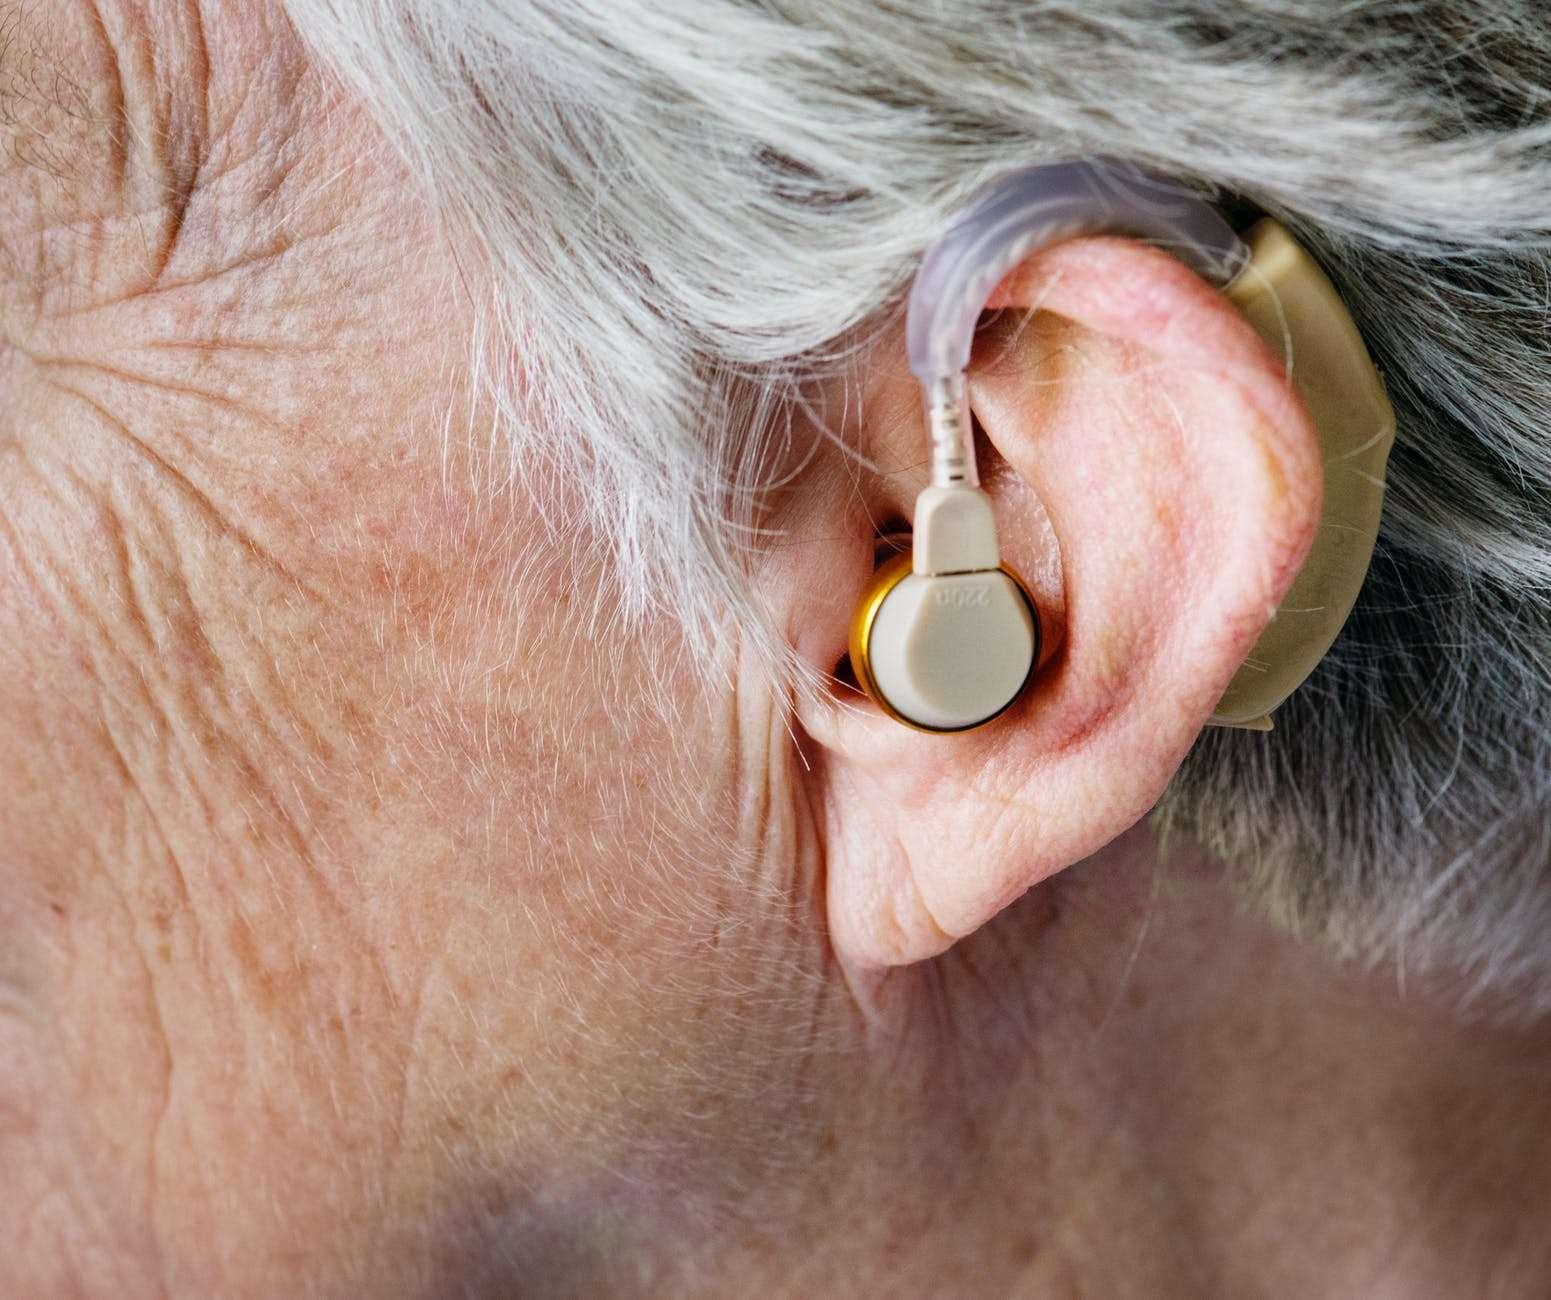 BEST TREATMENT IN HEARING LOSS IN SHARJAH SENSORINEURAL HEARING LOSS